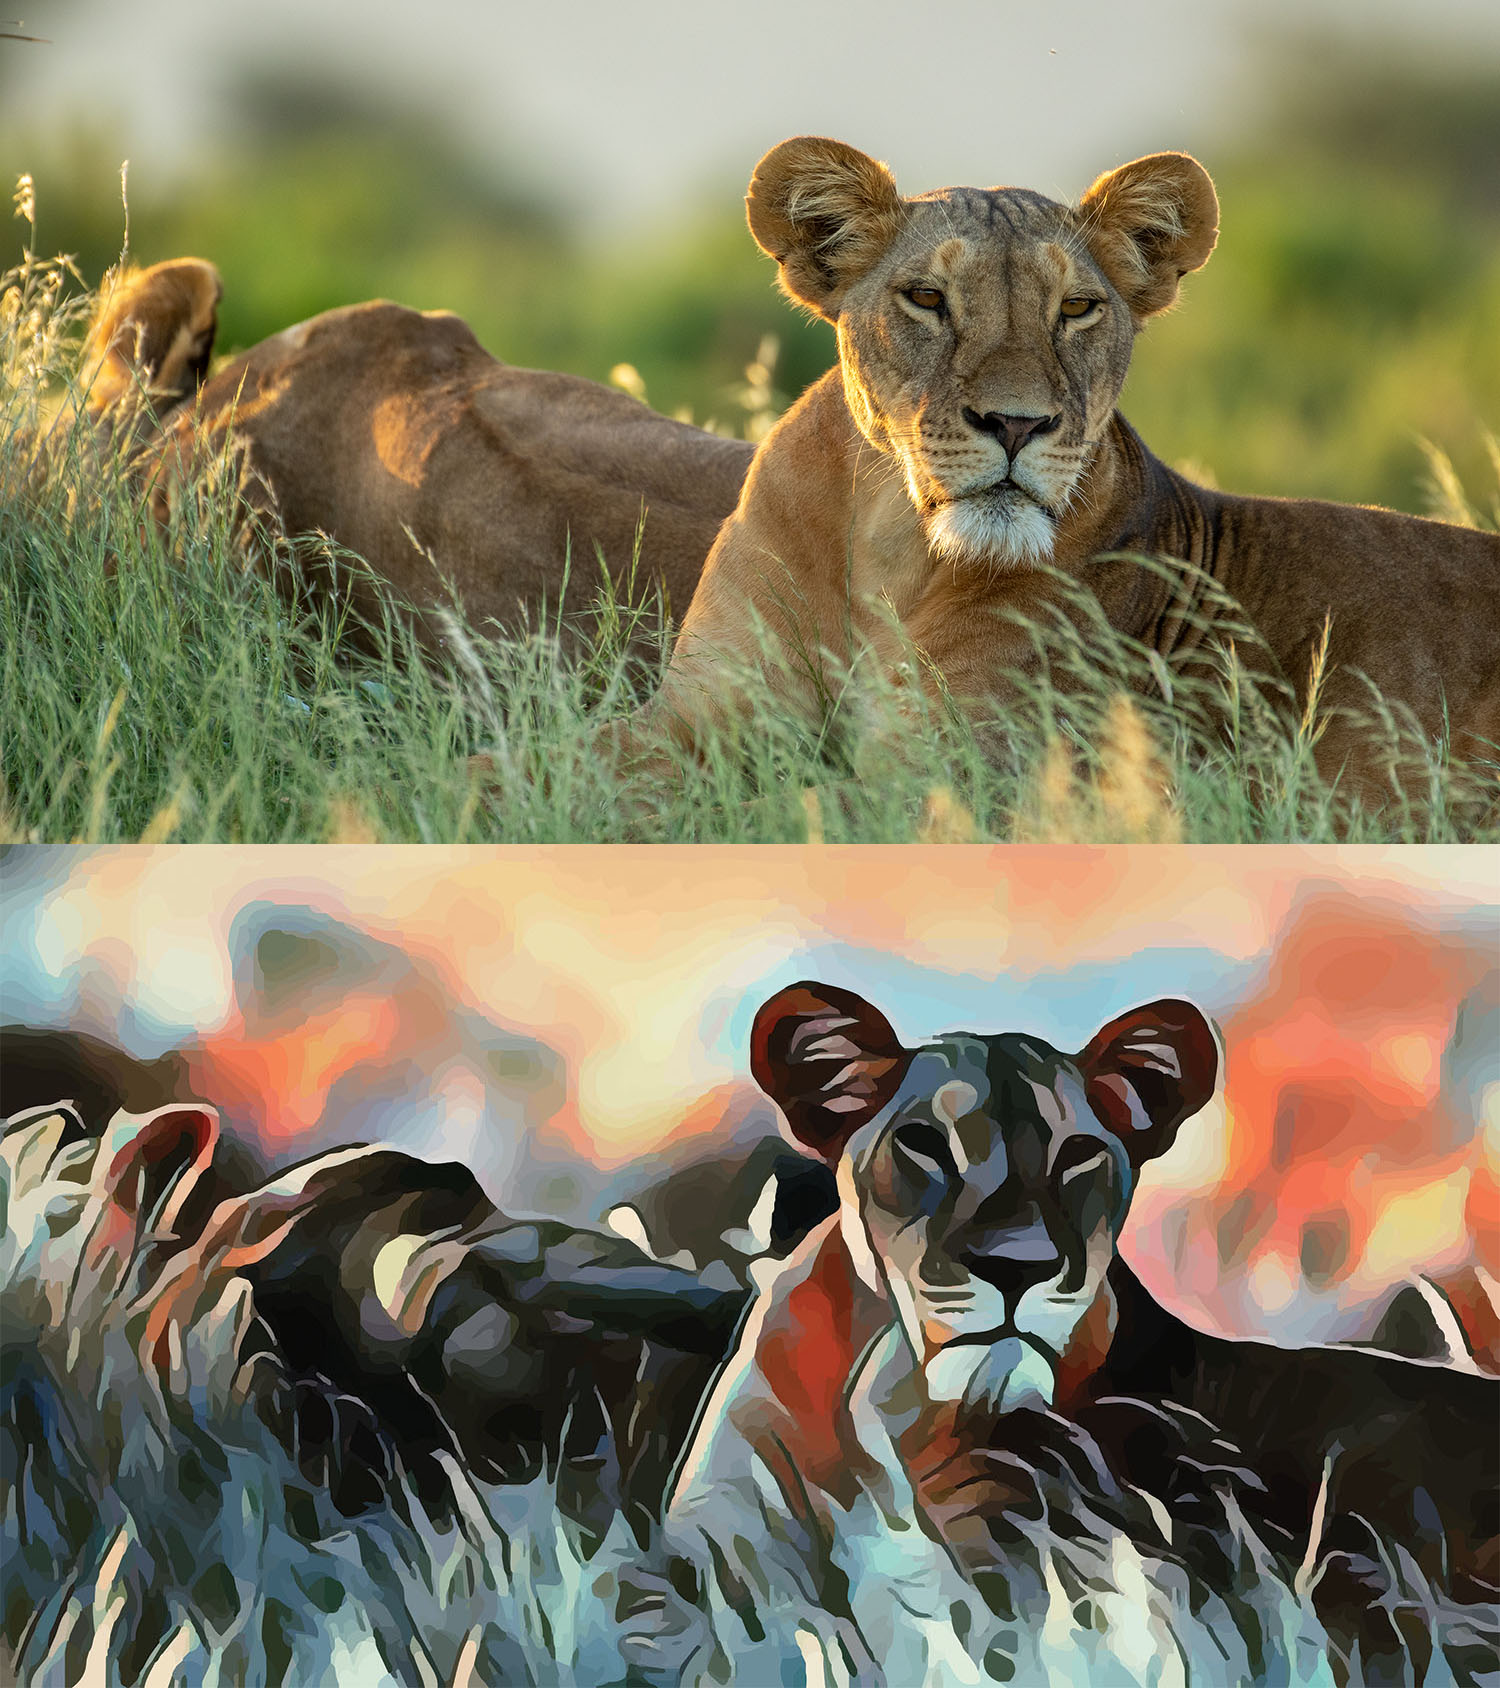 Before and after stylized image of a lioness lying in the grass